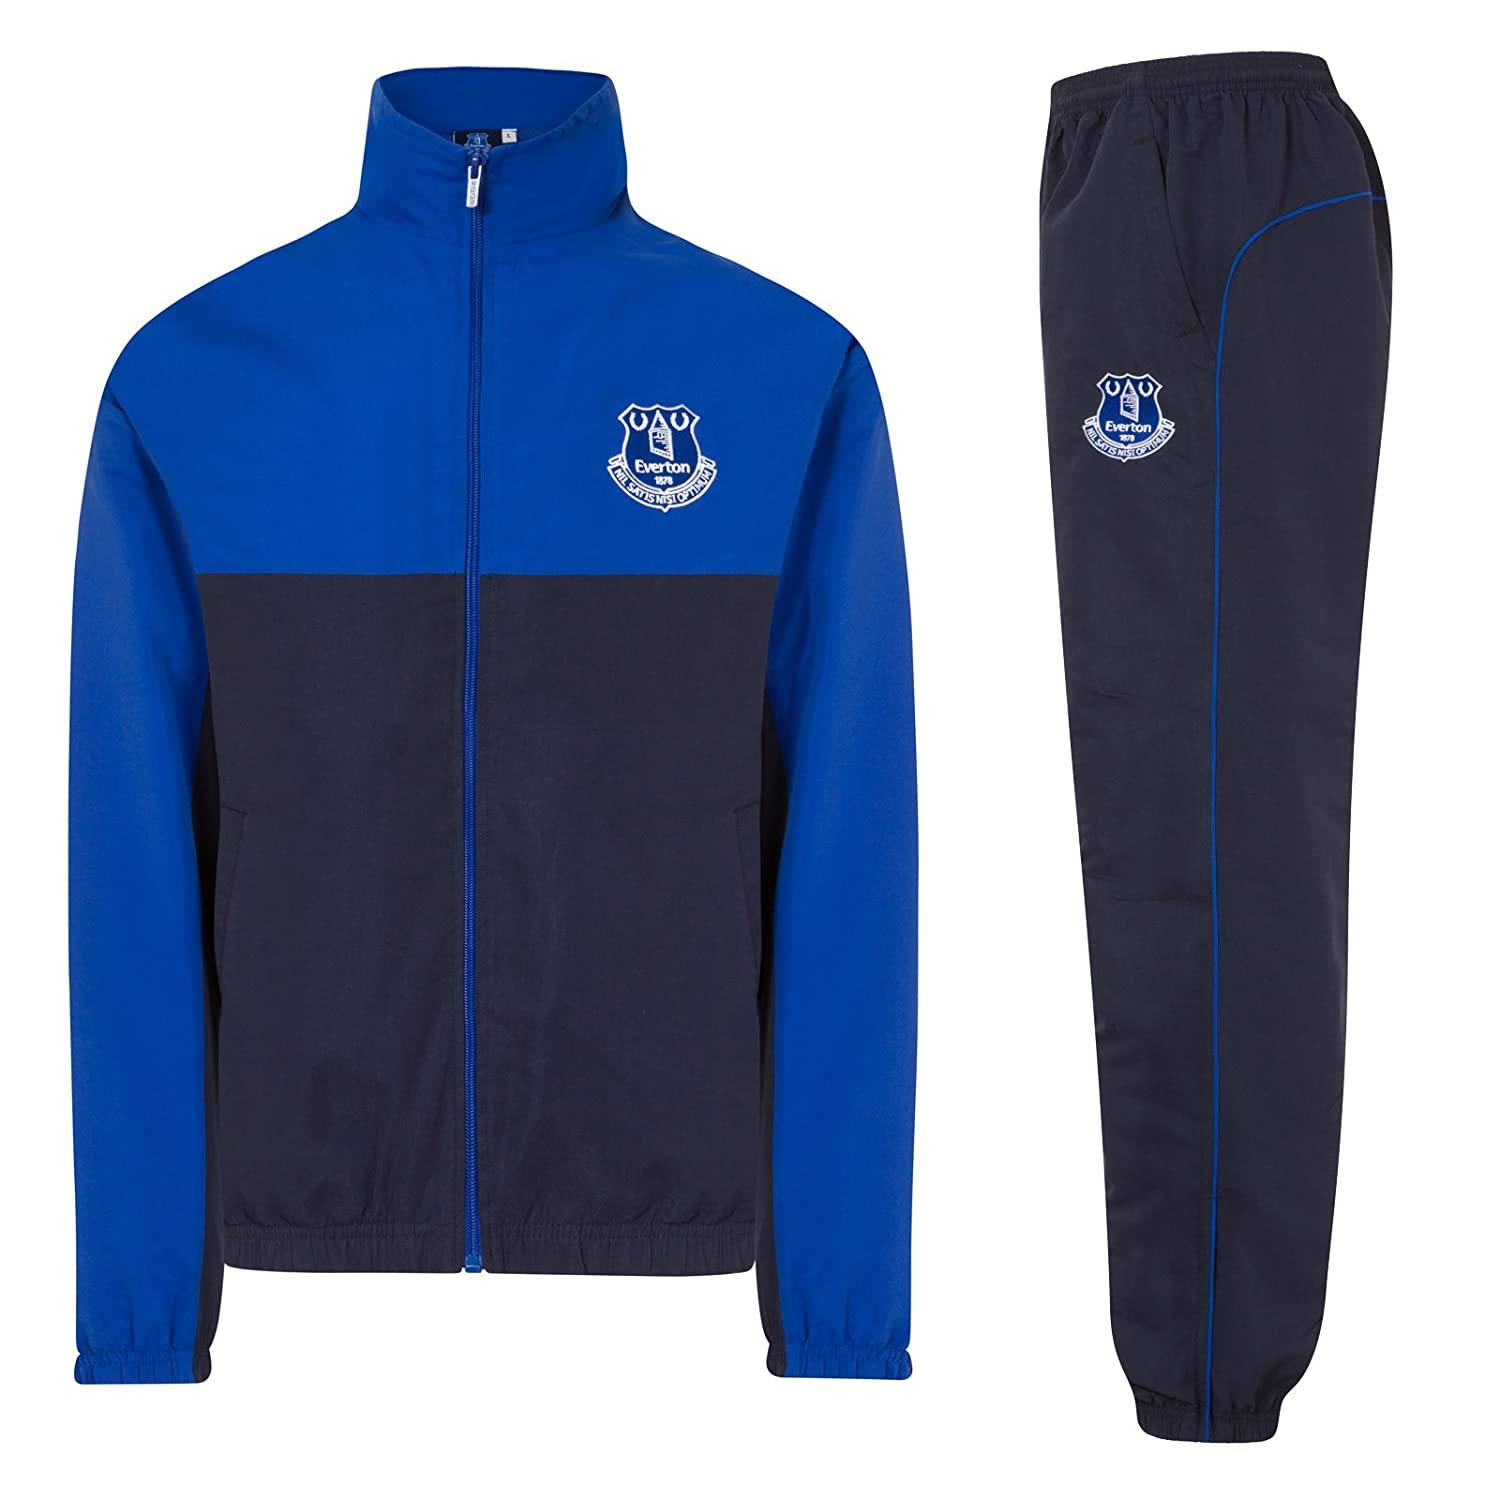 75c8fd2ff84 Everton FC Official Football Gift Mens Jacket & Pants Tracksuit Set:  Amazon.co.uk: Clothing